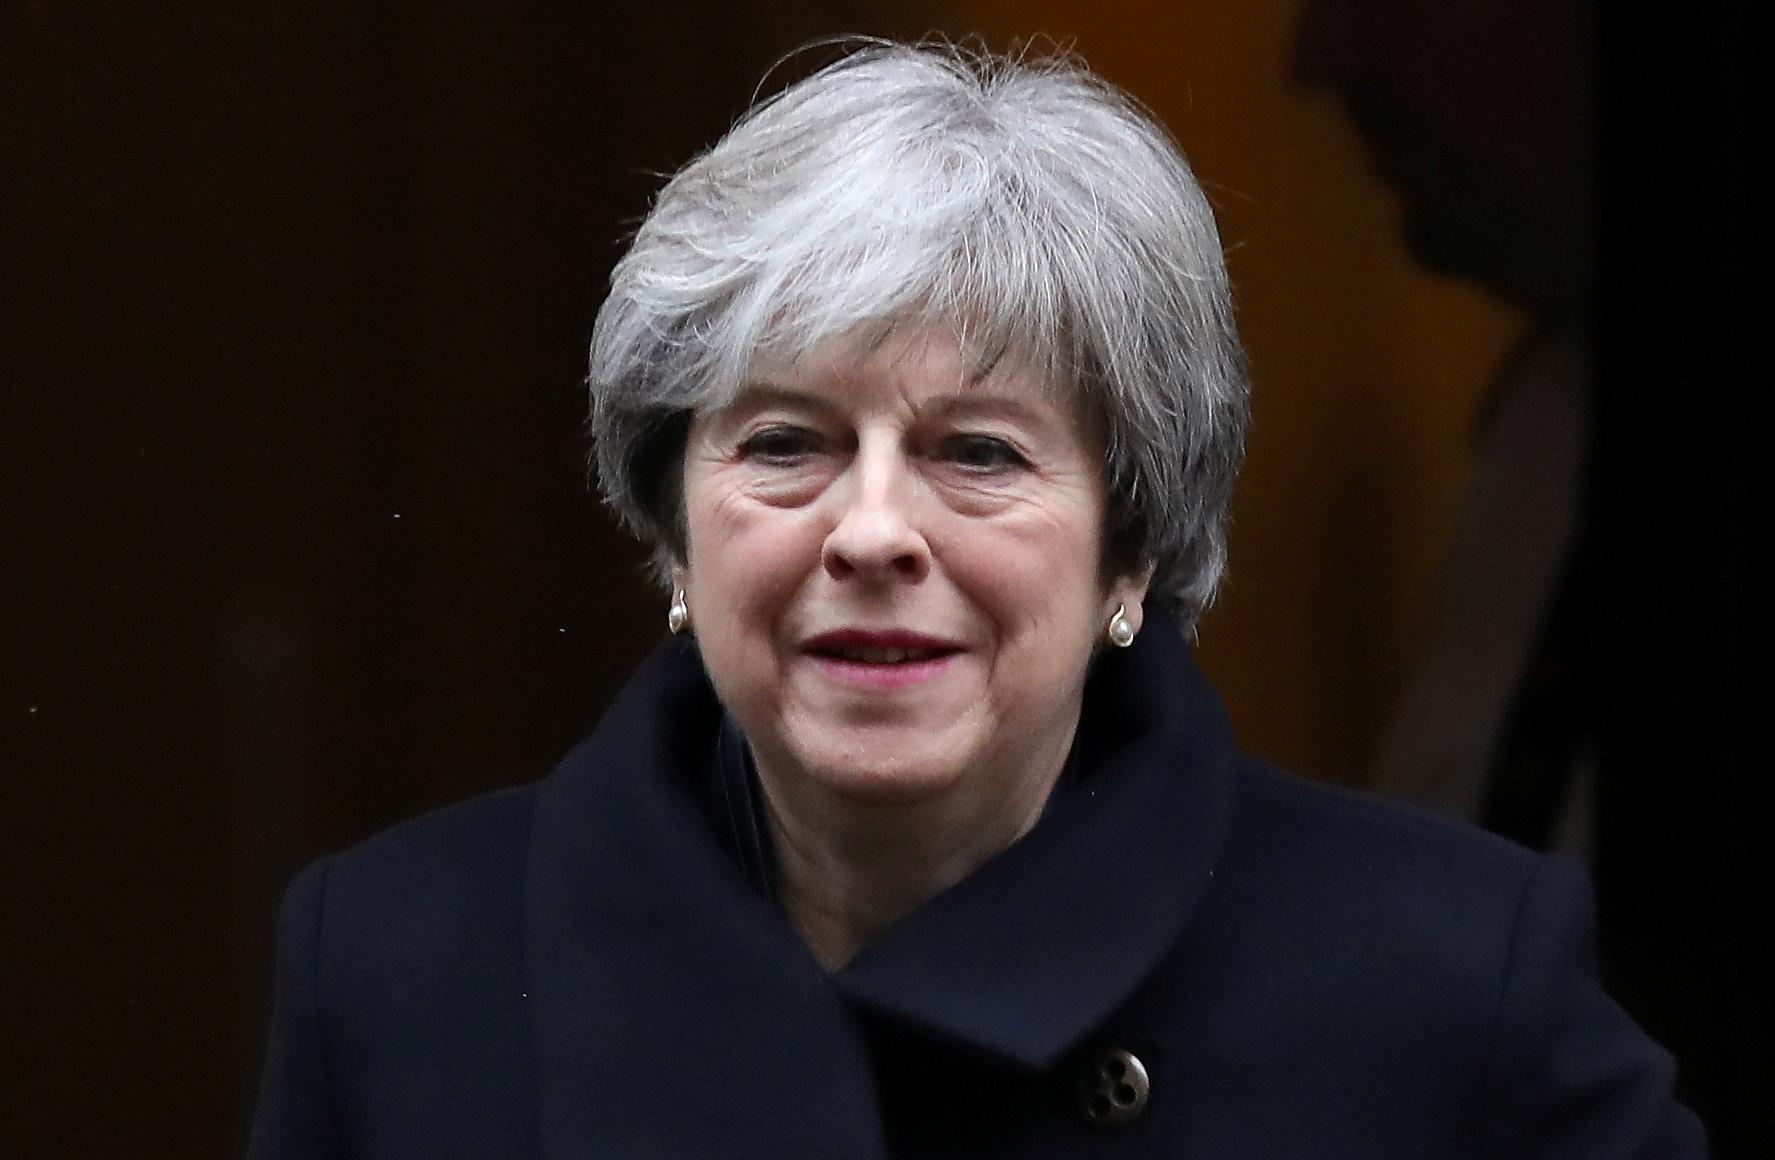 PM May says EU clear UK can have bespoke trade deal